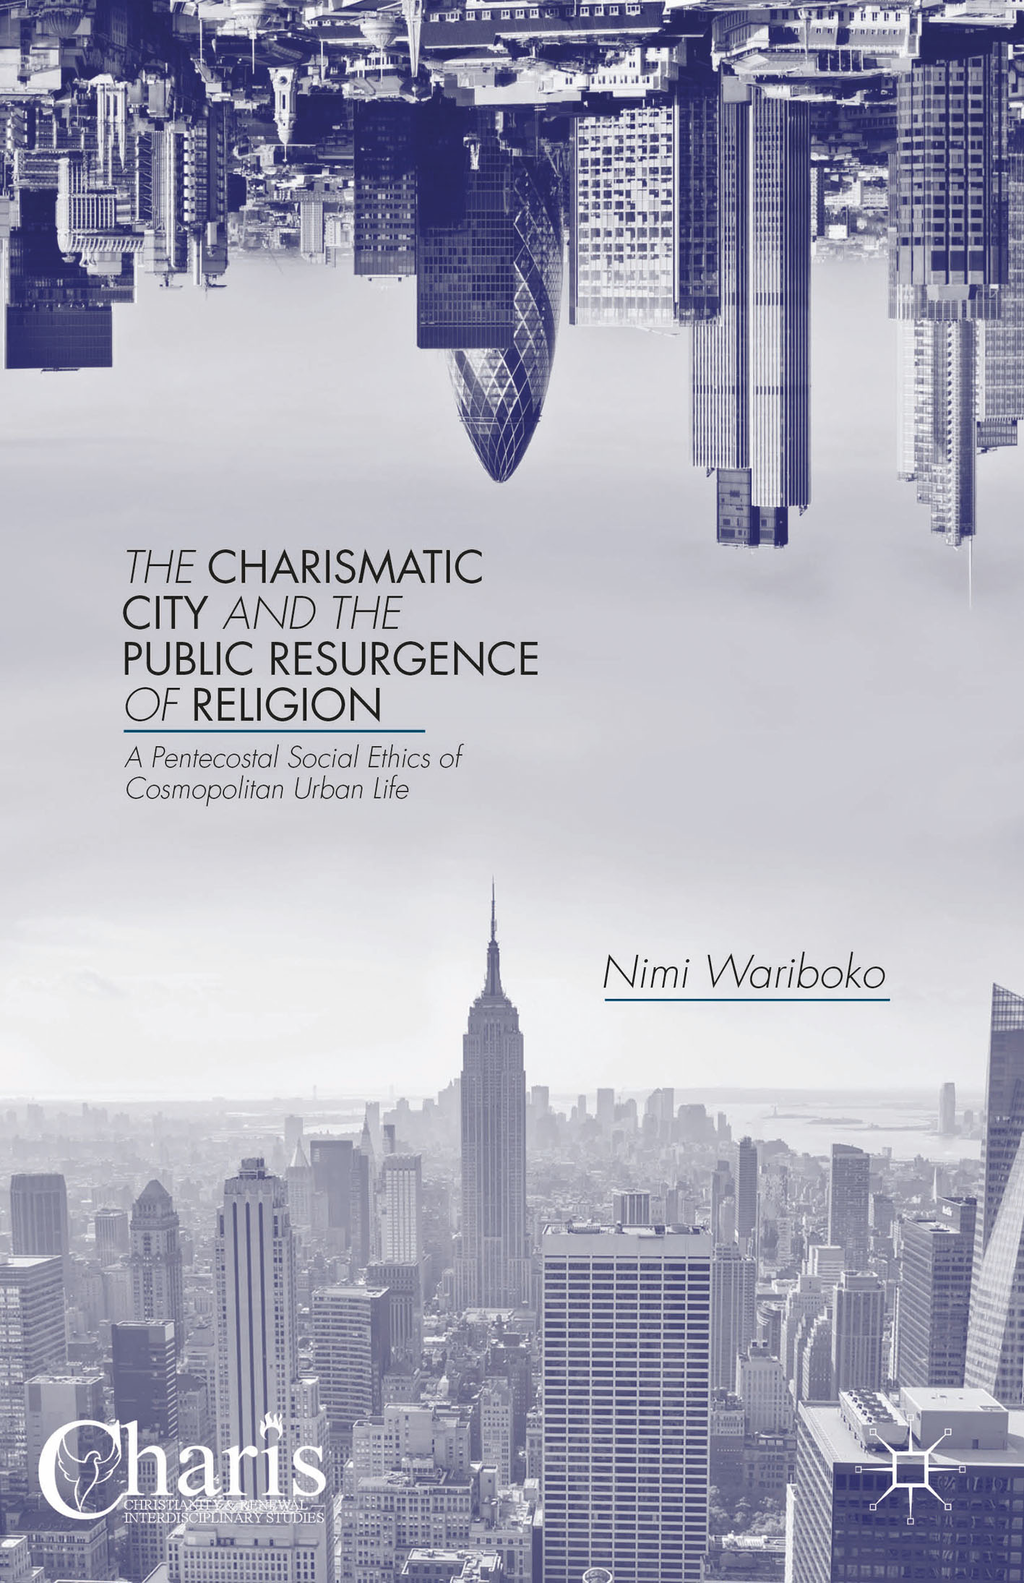 The Charismatic City and the Public Resurgence of Religion A Pentecostal Social Ethics of Cosmopolitan Urban Life